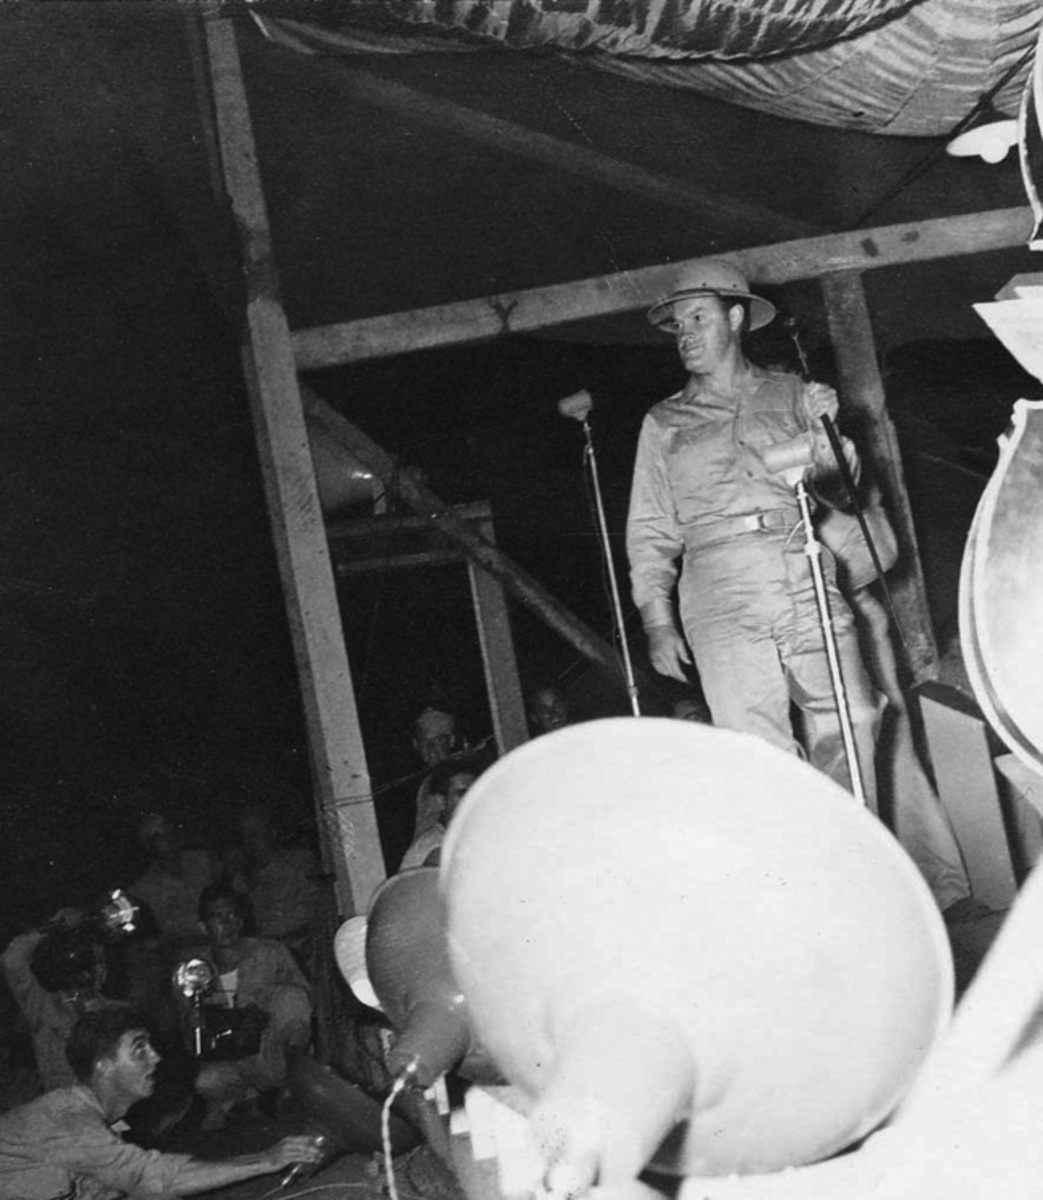 Bob Hope performed for members of 3rd Attack Group at Port Moresby, New Guinea. Dad couldn't remember if it was 1943 or 1944.